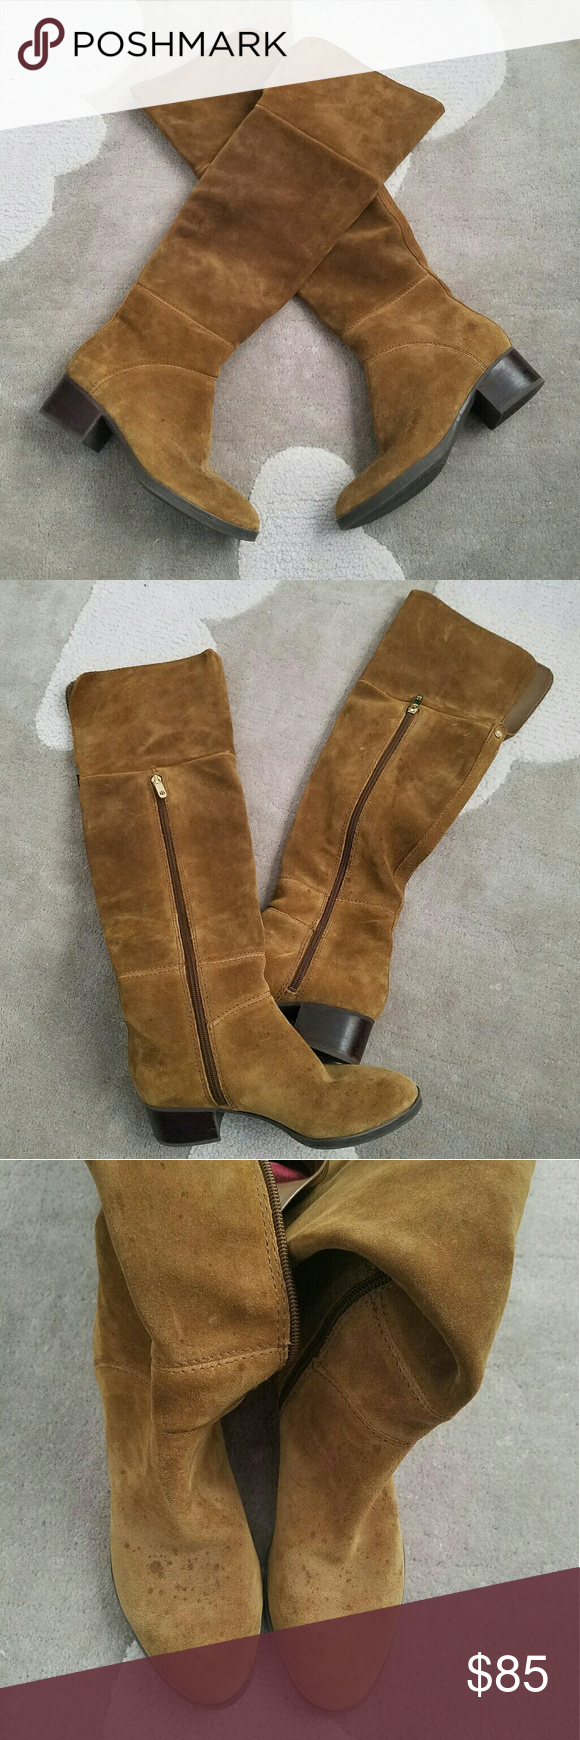 452461f43b29b8 Tommy Hilfiger Gianna suede over the knee boots Color is brown but has a  hint of green yellow to it in person Almond toe Partial side zip closure  Top flat ...